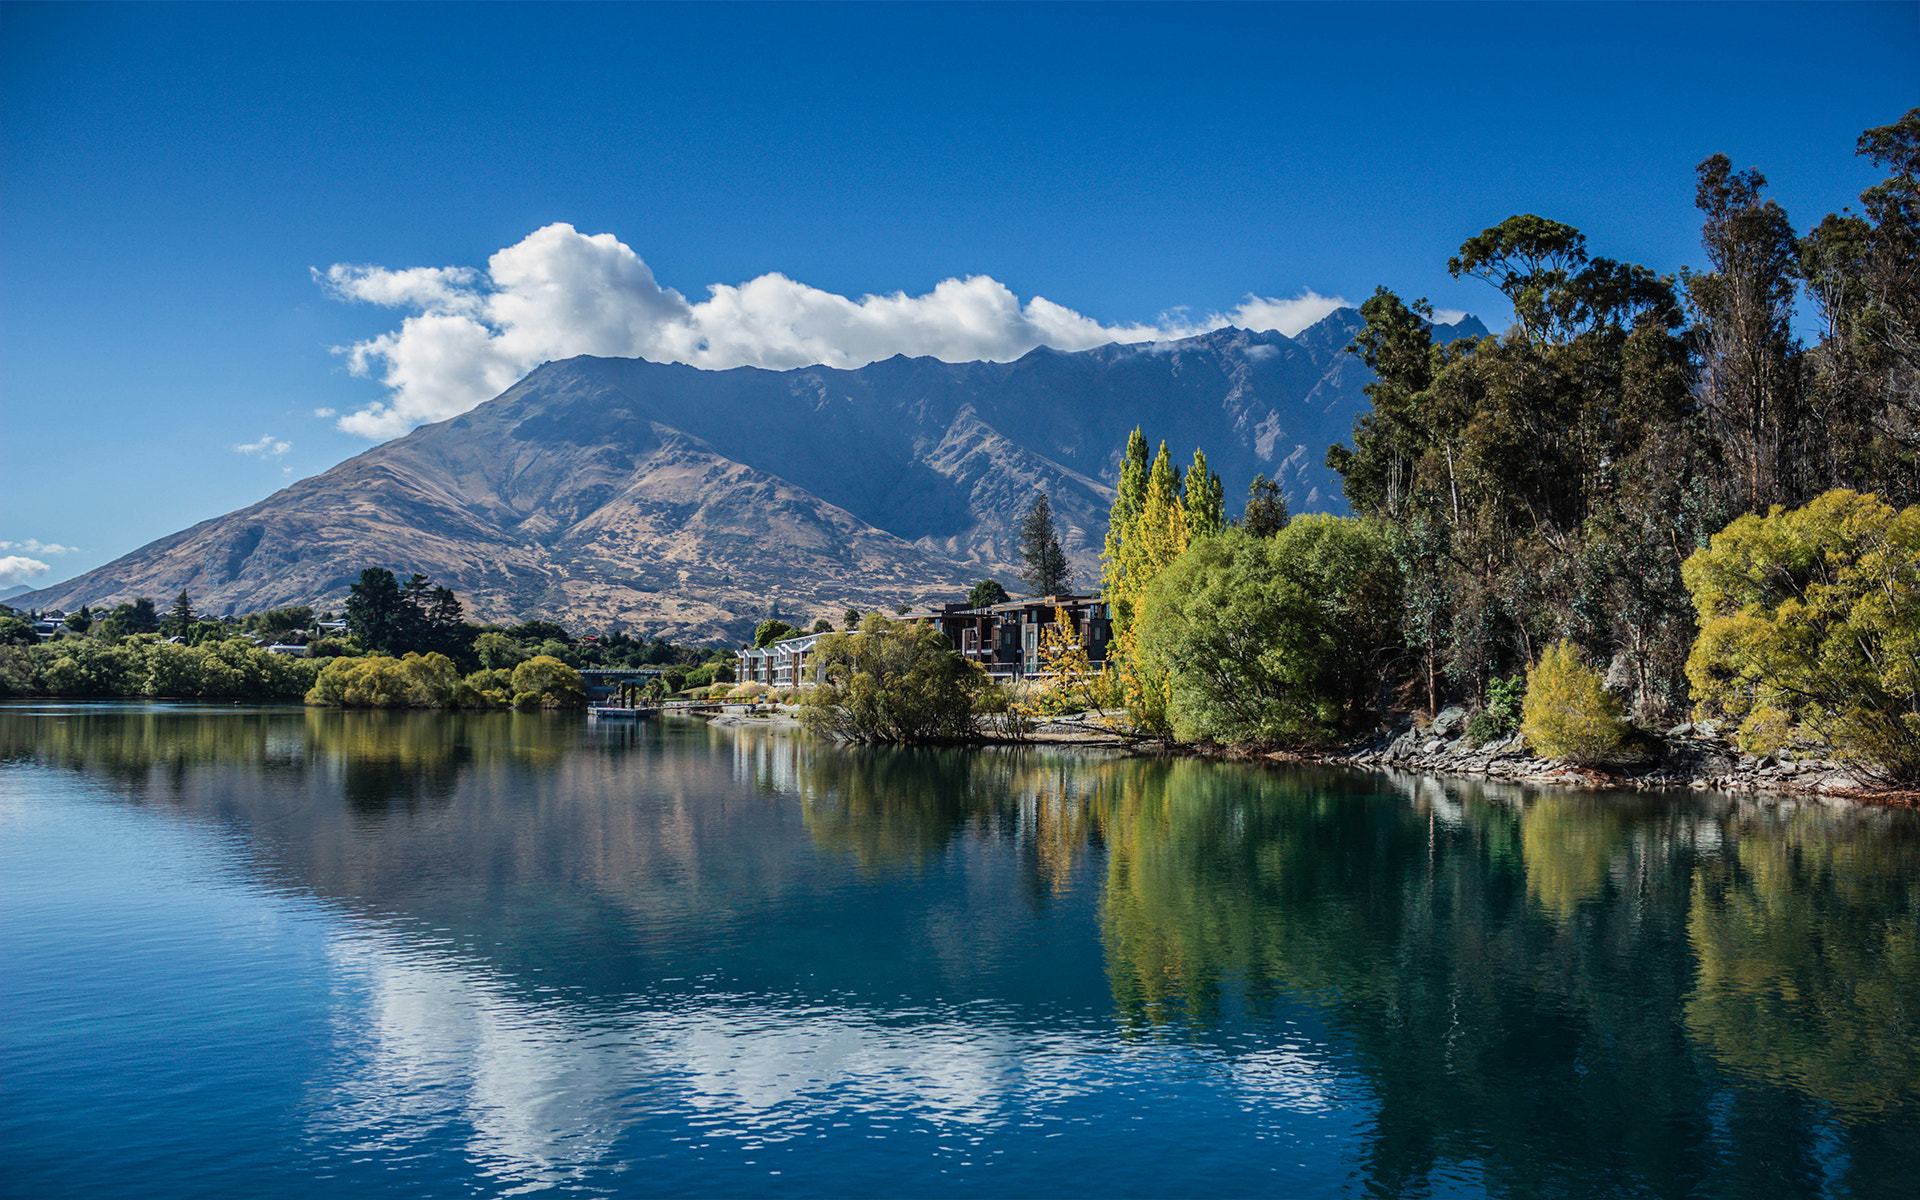 Photograph Queenstown, New Zealand by Andrew Goodlad on 500px